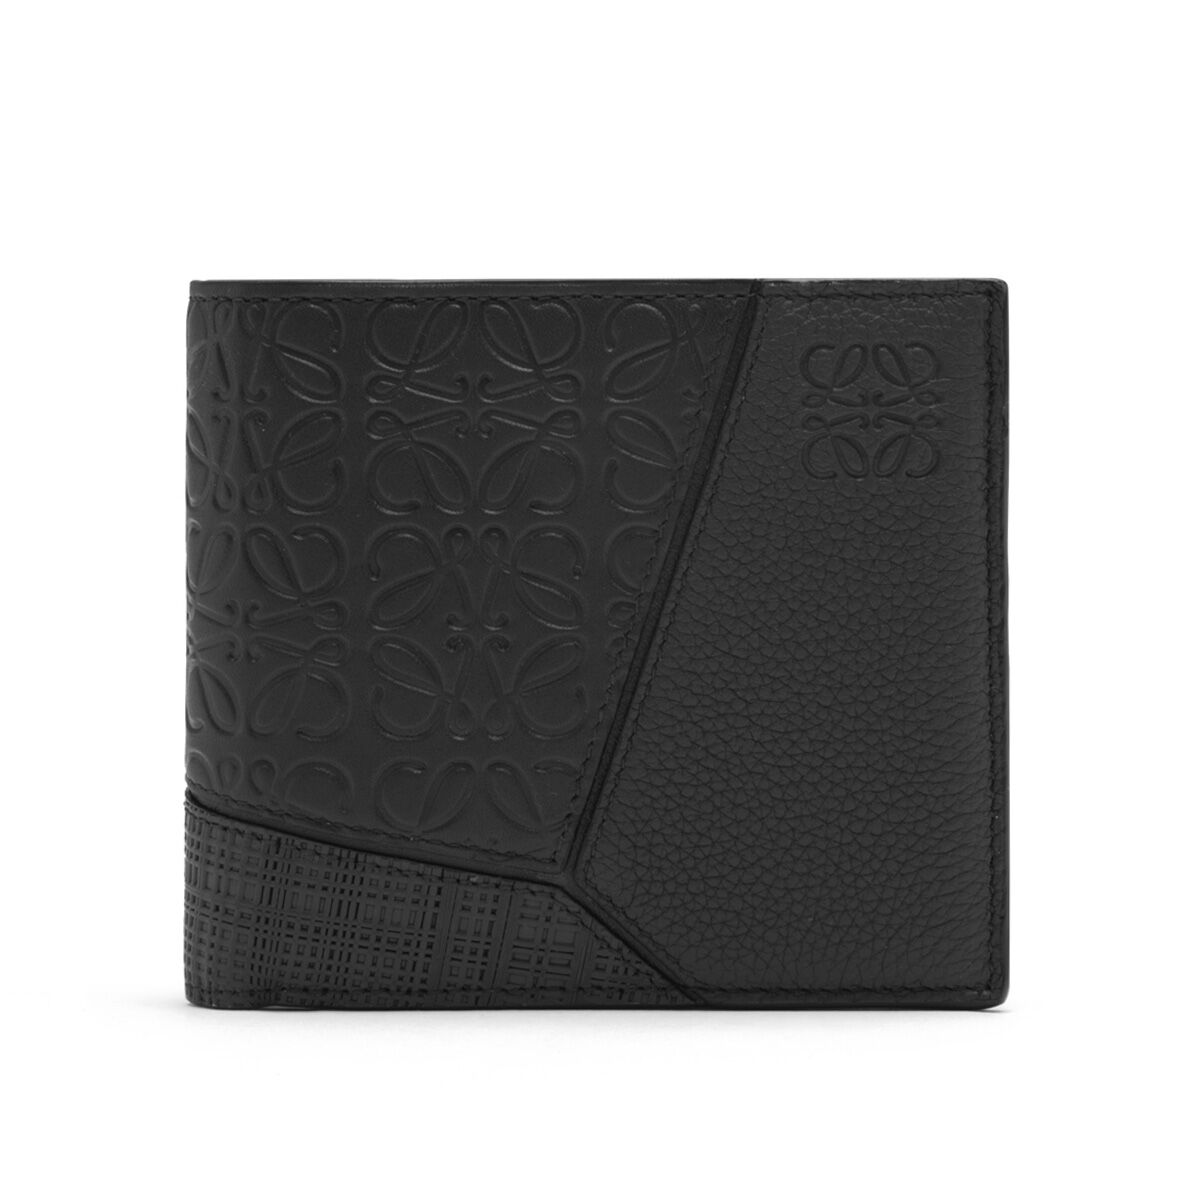 LOEWE Puzzle Multitexture Bifold Coi 黑色 all